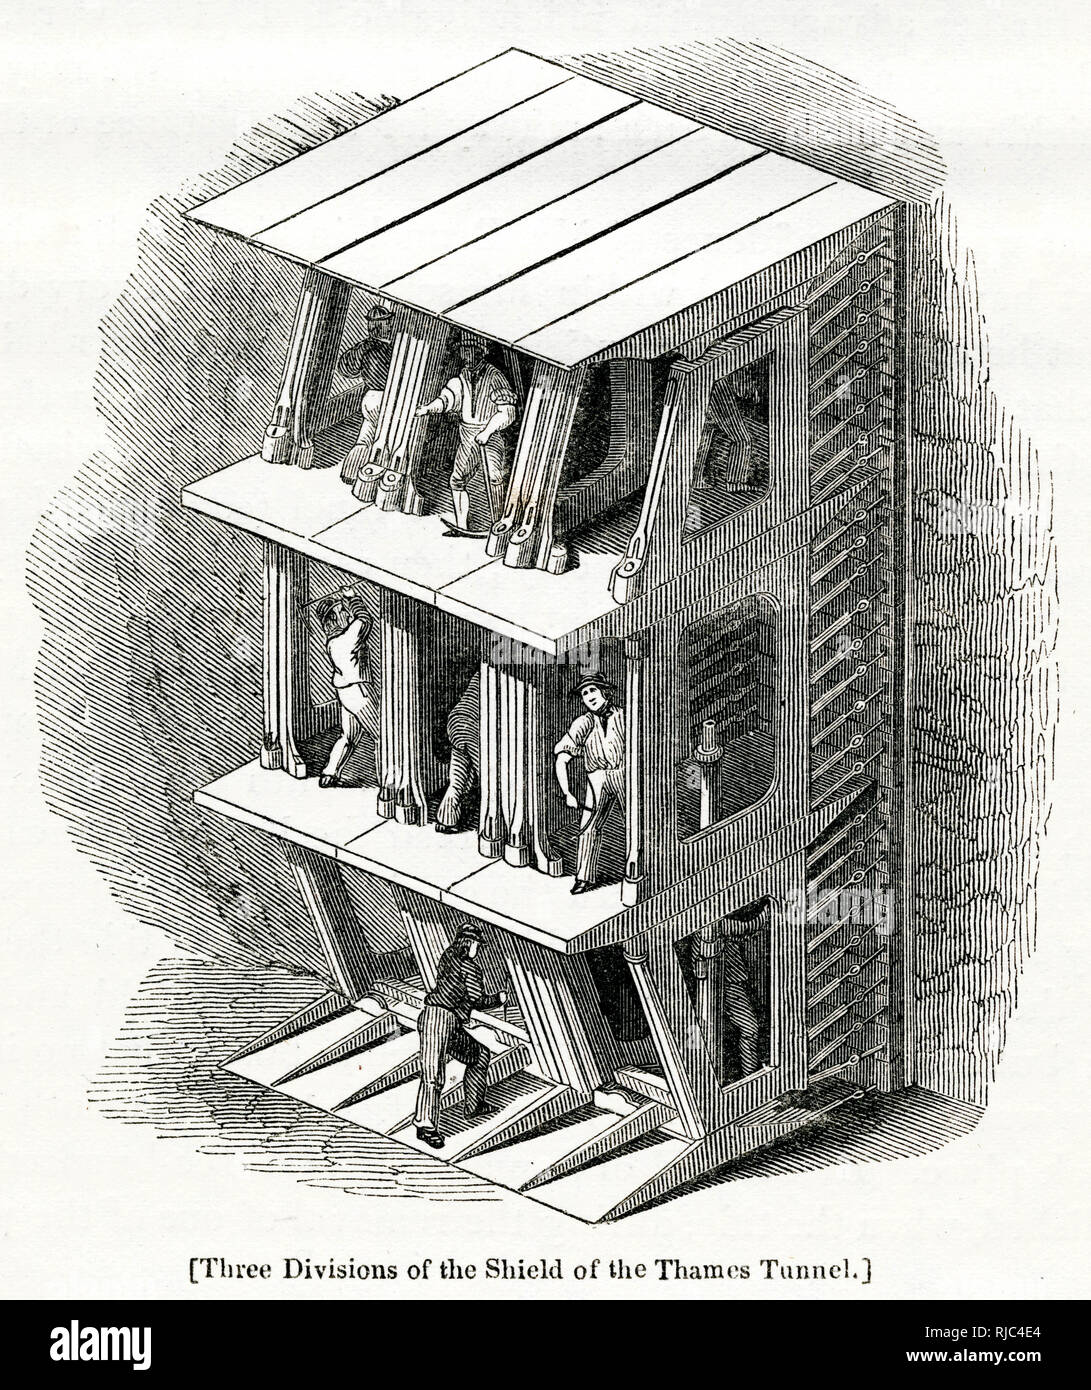 Section of the three divisions of the shield of the Thames Tunnel in 1825, using Marc Isambard Brunel's and Thomas Cochrane's newly invented tunnelling shield technology. Stock Photo